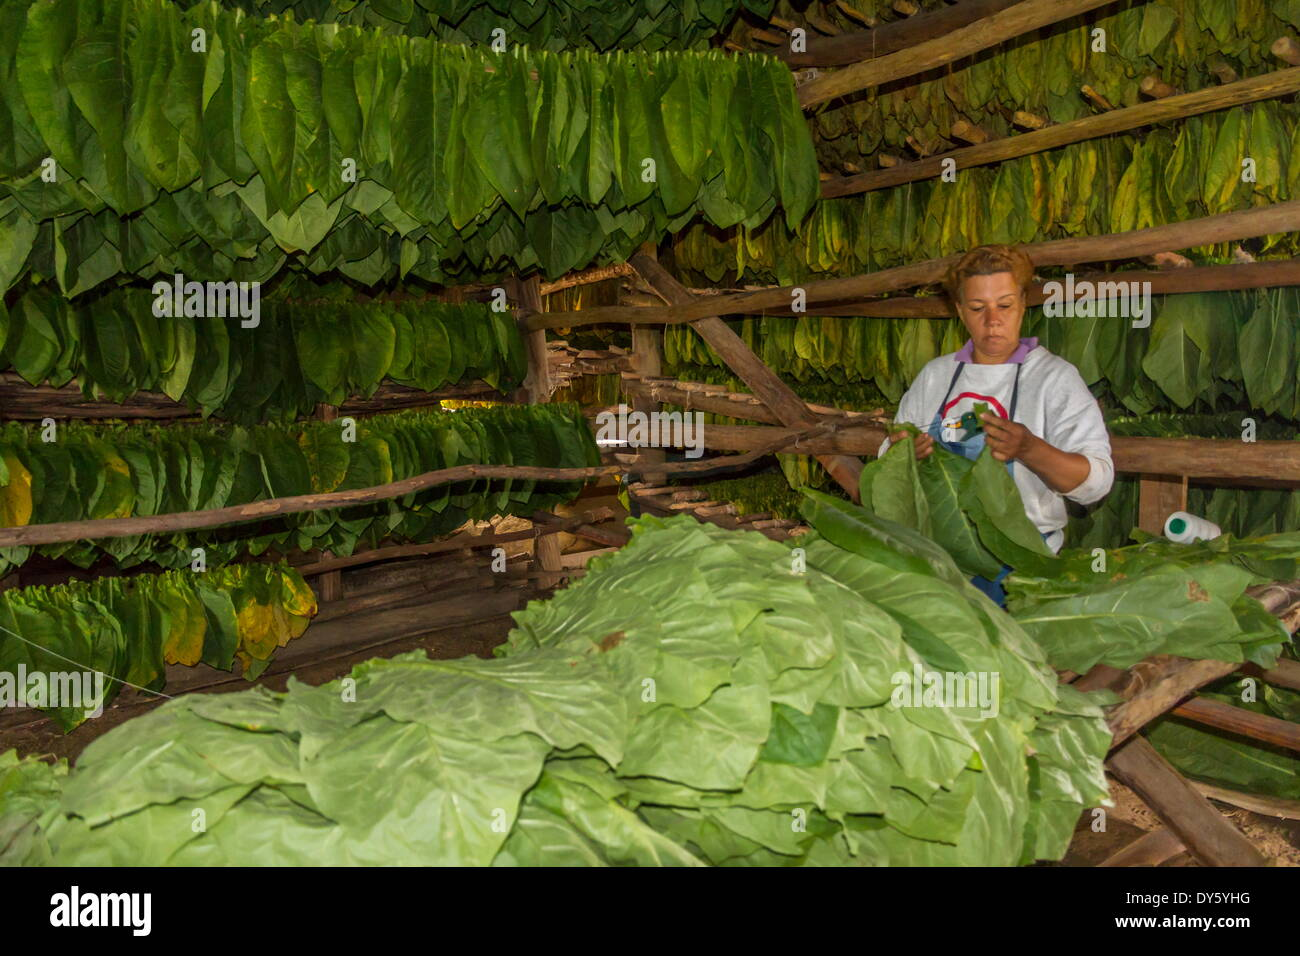 Tobacco drying shed, Pinar del Rio, Cuba, West Indies, Caribbean, Central America Stock Photo